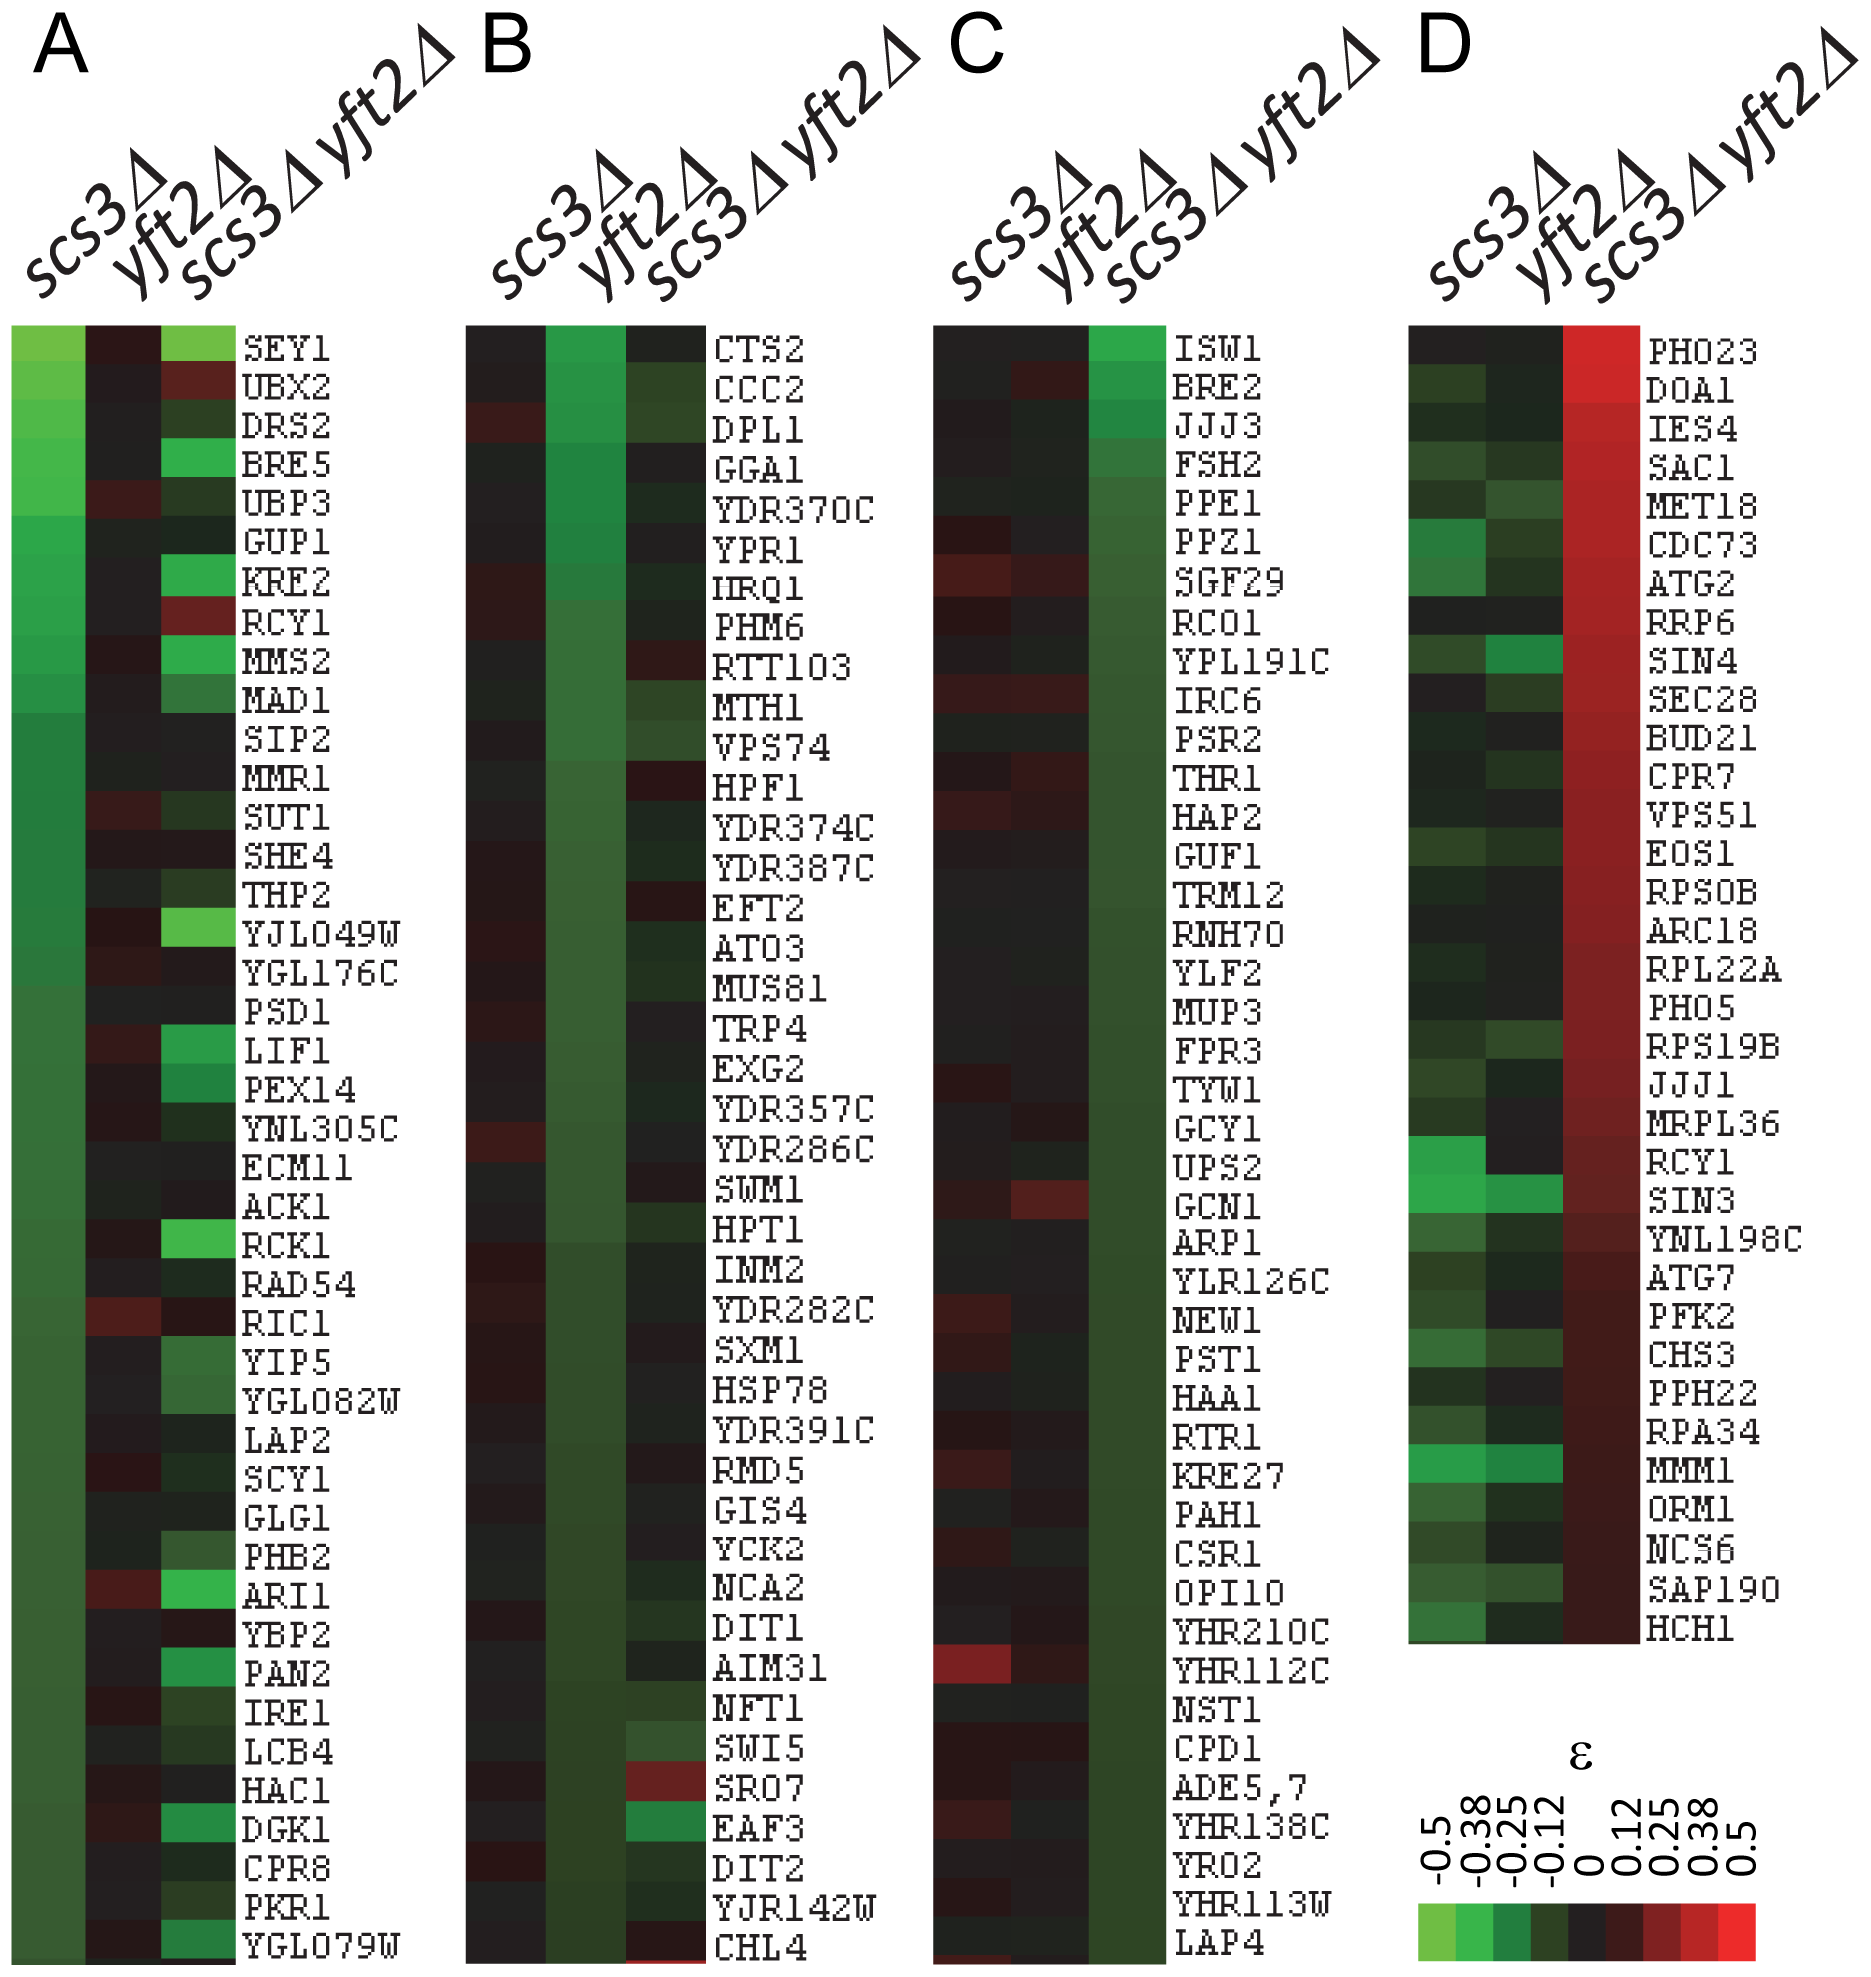 Representative genetic interactions obtained in SGA screens with <i>SCS3</i> and <i>YFT2</i> gene-deletion strains.